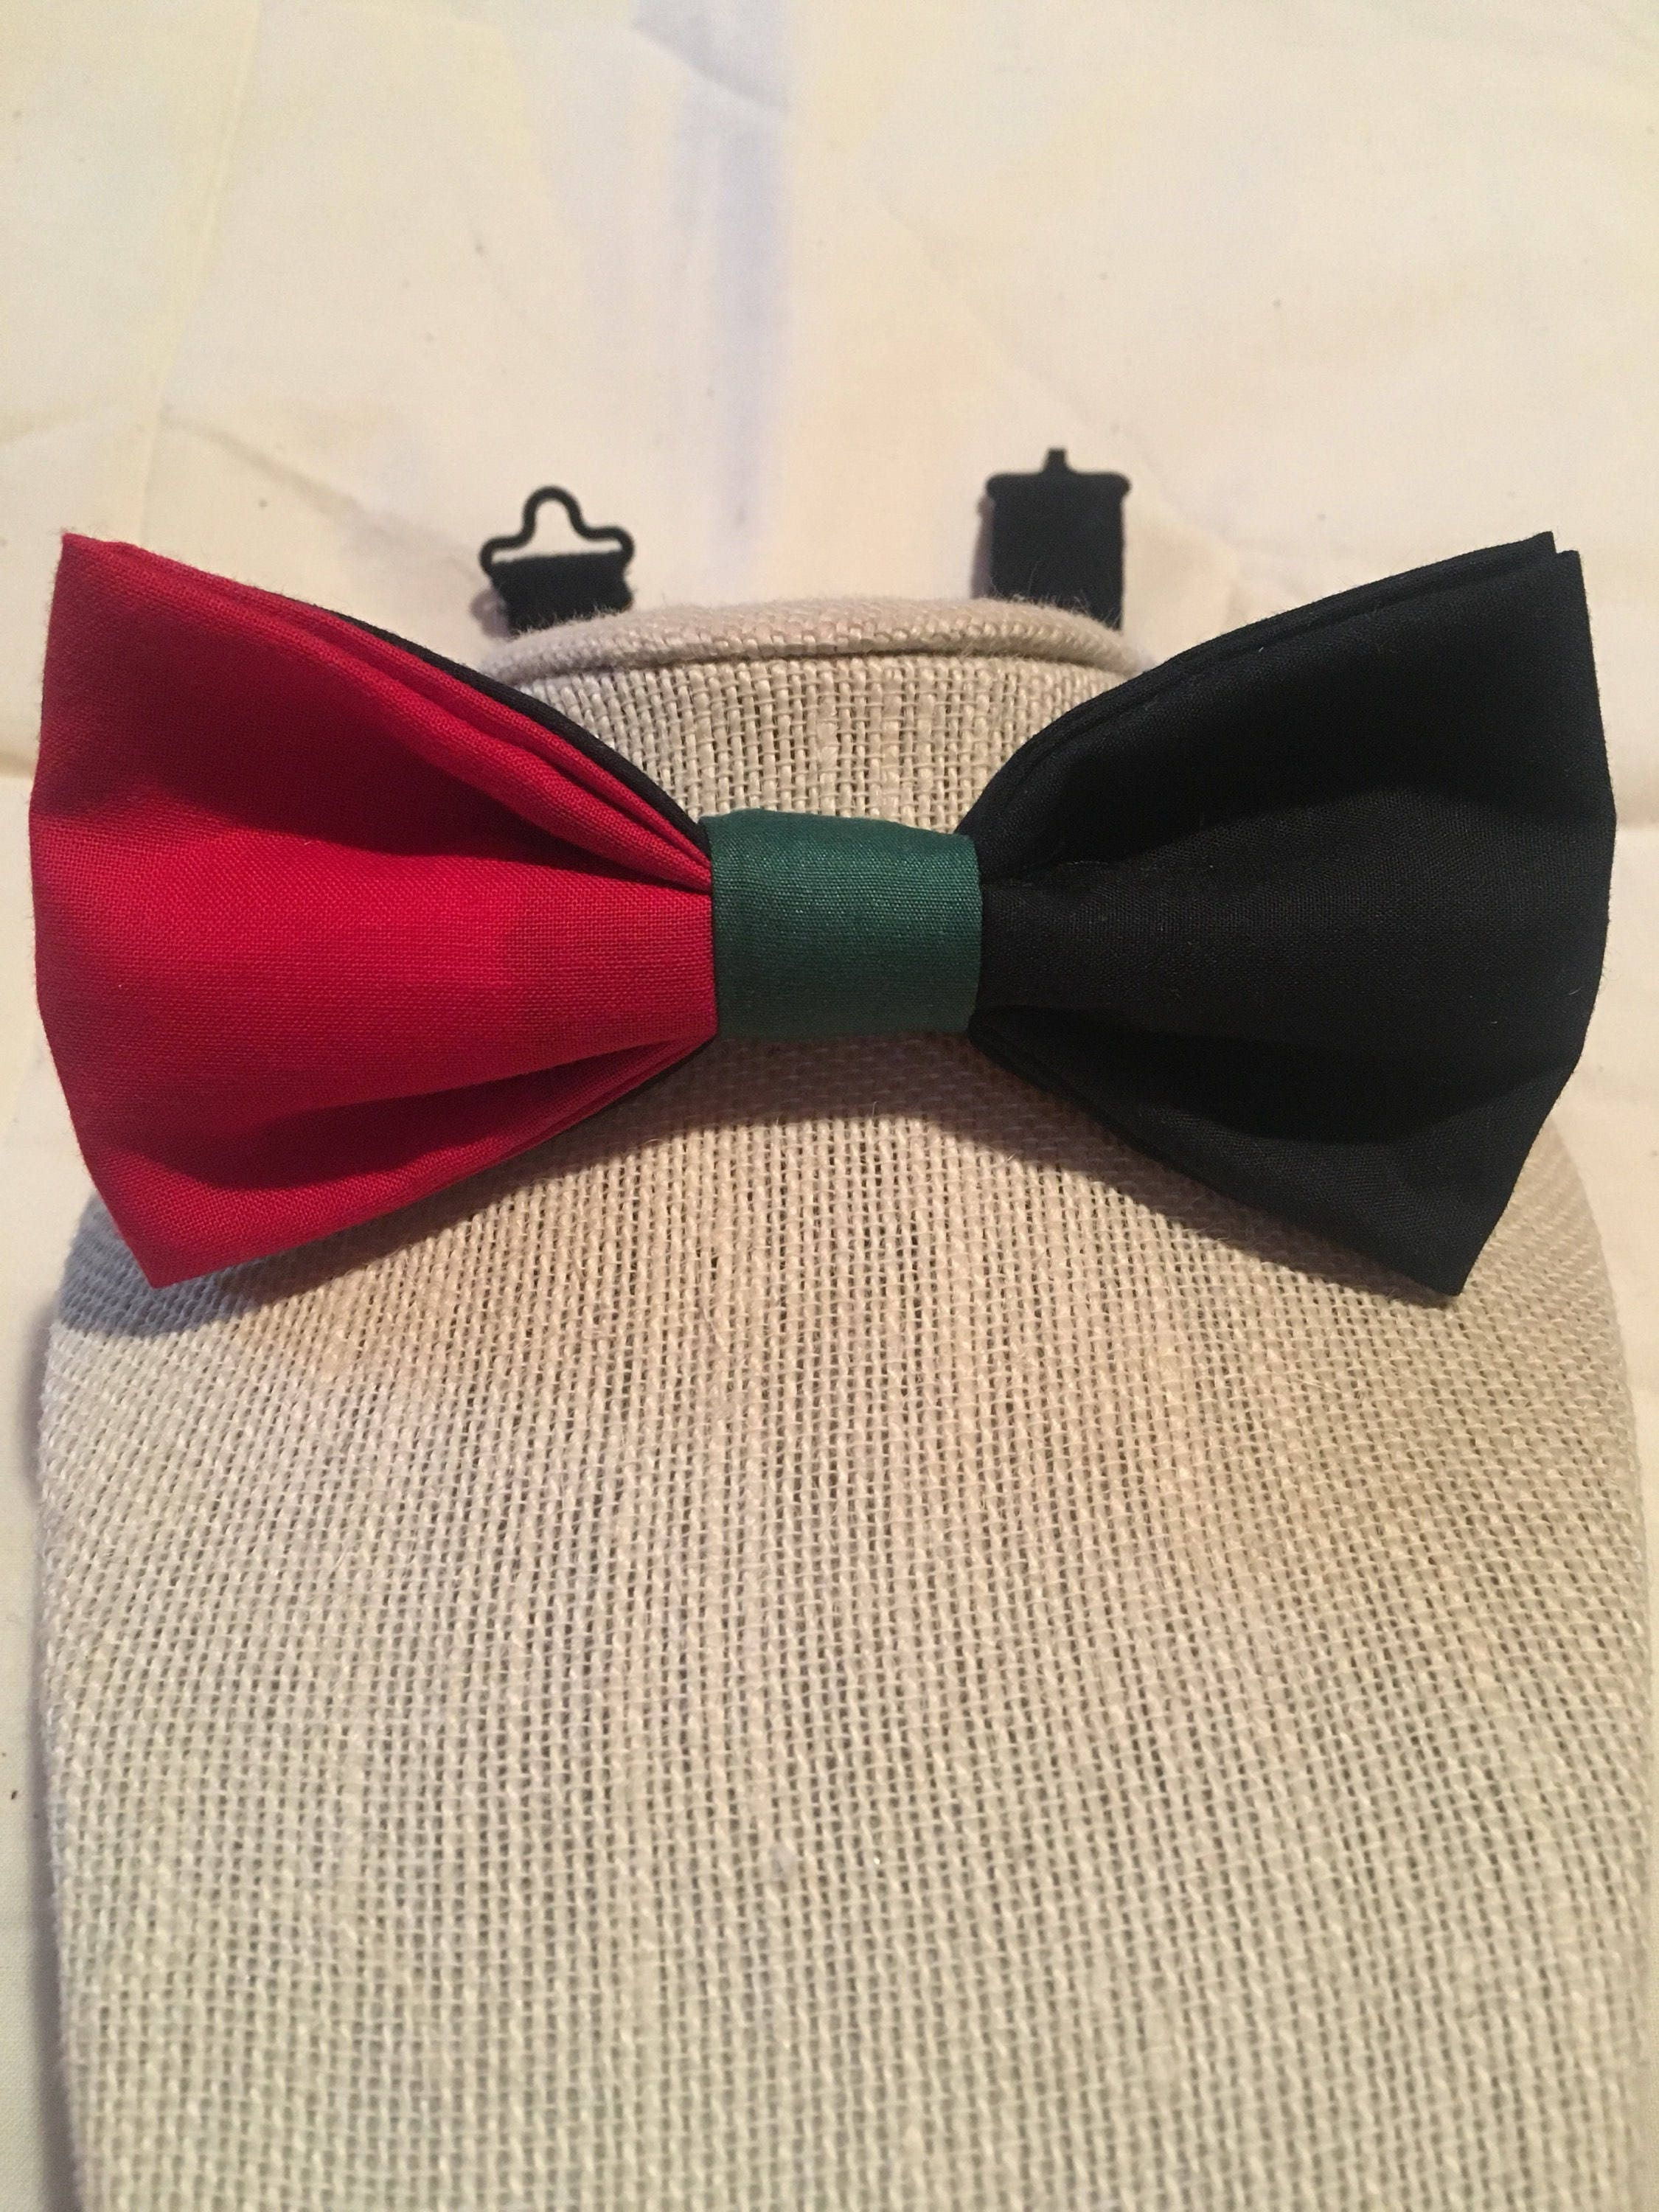 Black history month bow tie Pan-African bow tie red black   Etsy